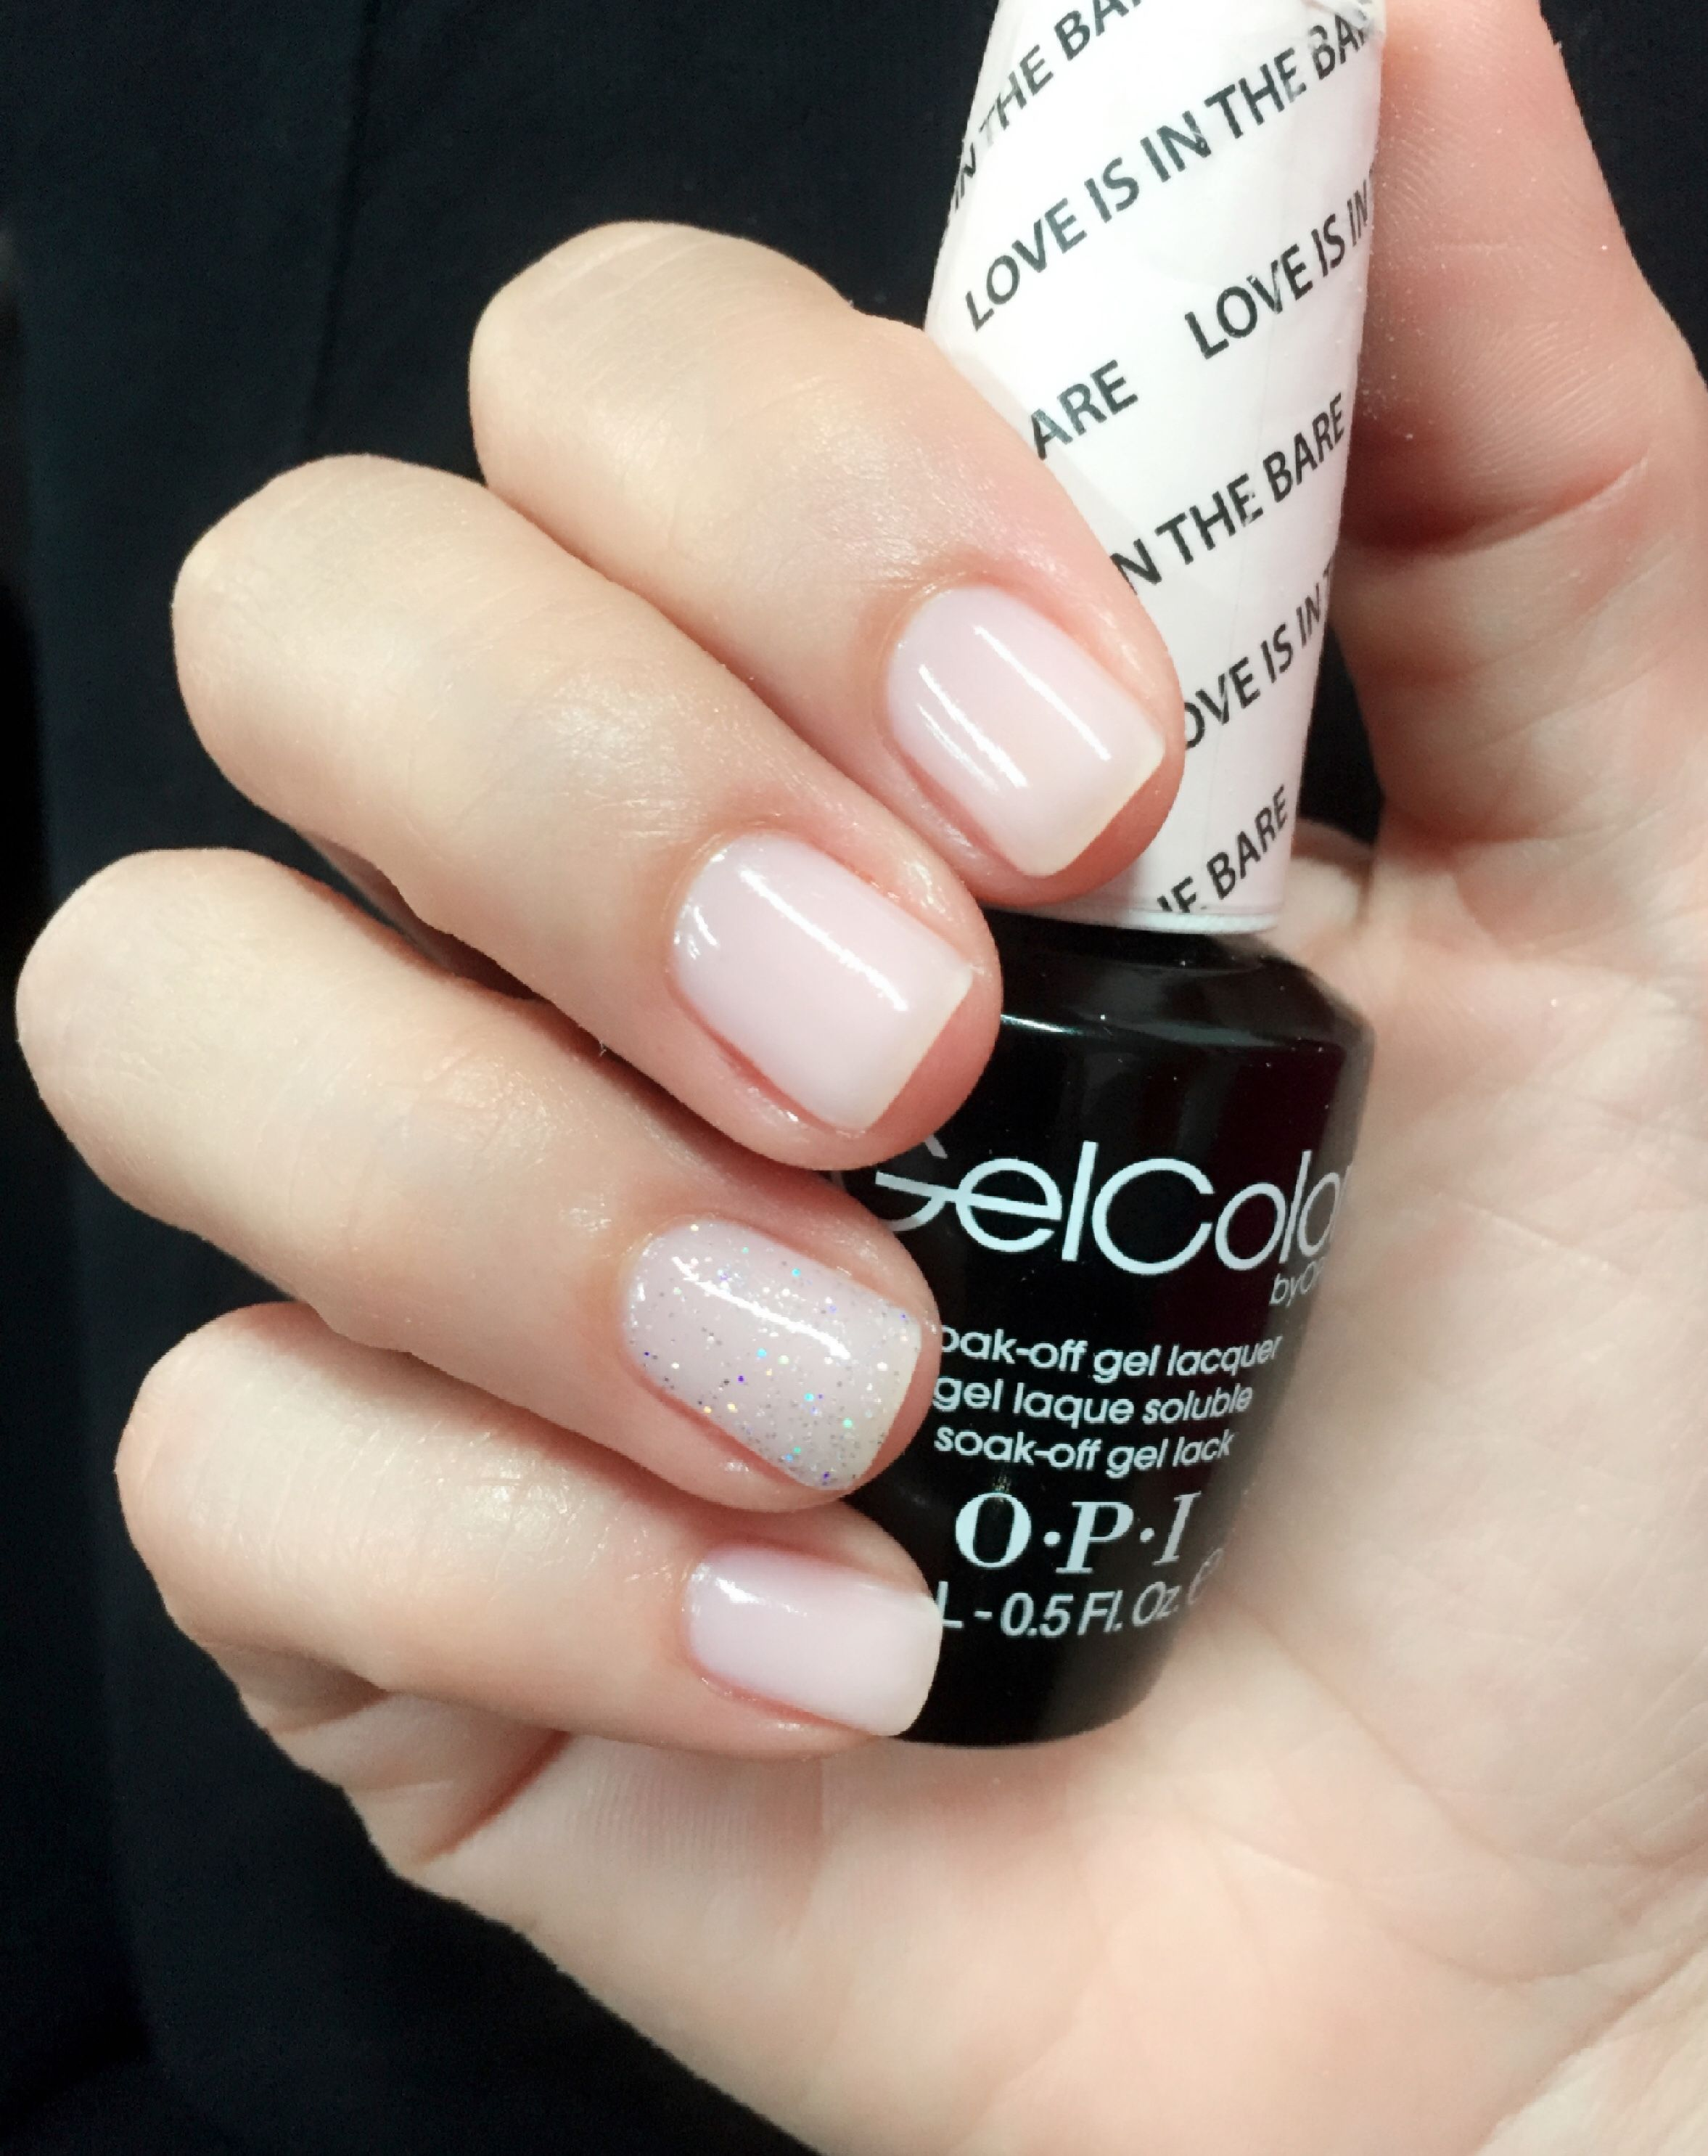 Is Bare Minerals Makeup Cruelty Free: Love Is In The Bare! ⚓. #opi#graciassuyin#nail